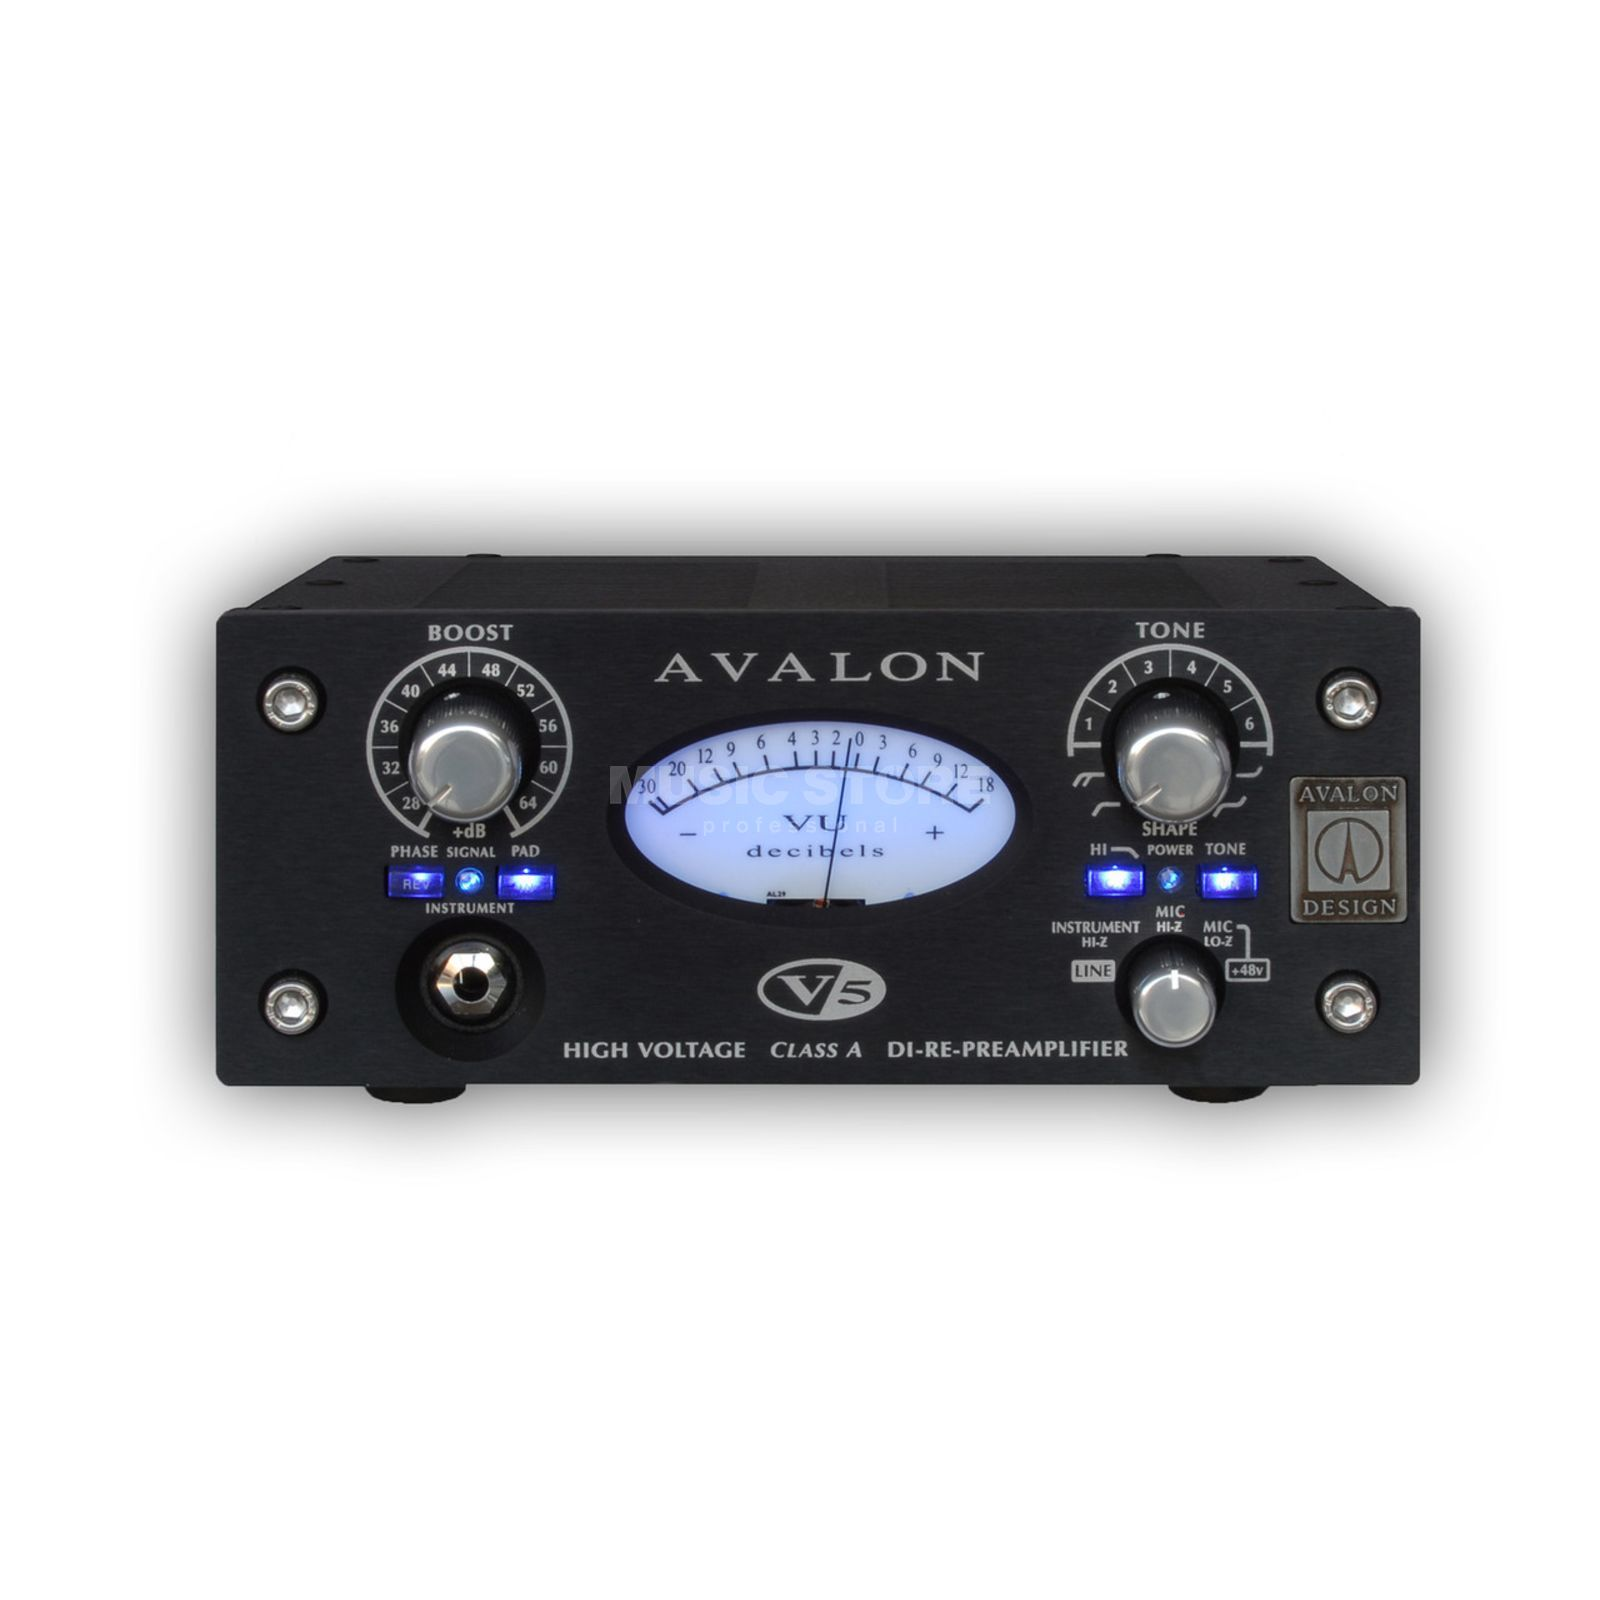 Avalon Design V5 Black 1 canal D.I.-Re-Mic Preamp Image du produit